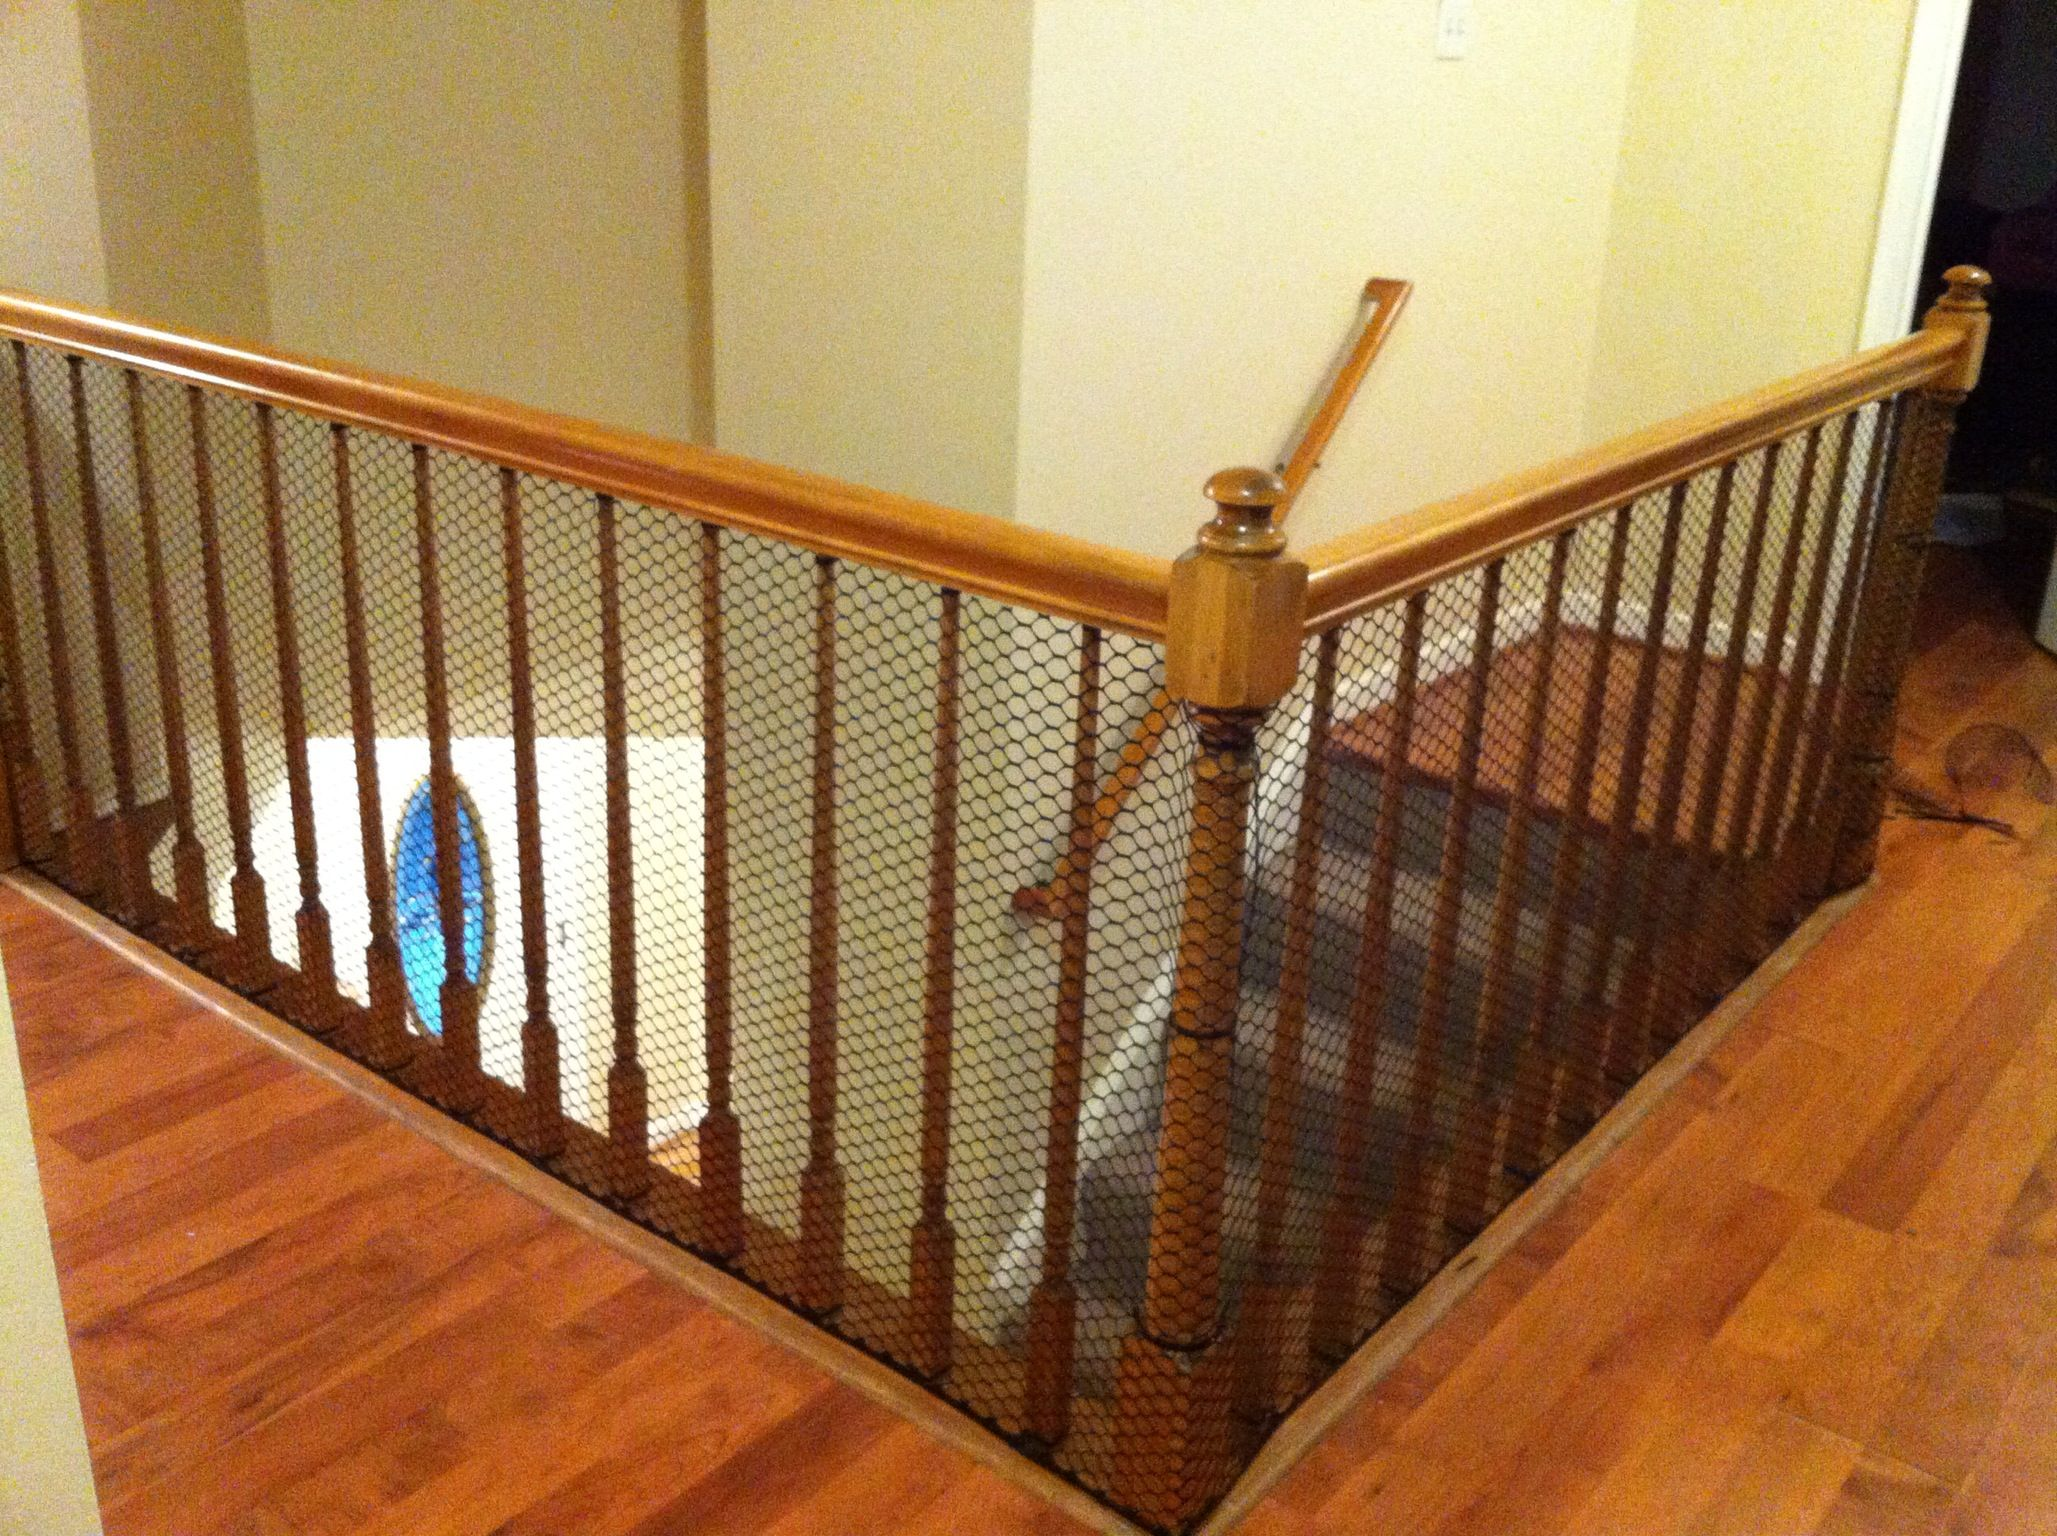 Cheap Way To Child Proof A Stairway With Banisters Which Are Too | Safety Handrails For Stairs | Wood Outdoor Hand | Baby Proofing | Wall | Rake | Front